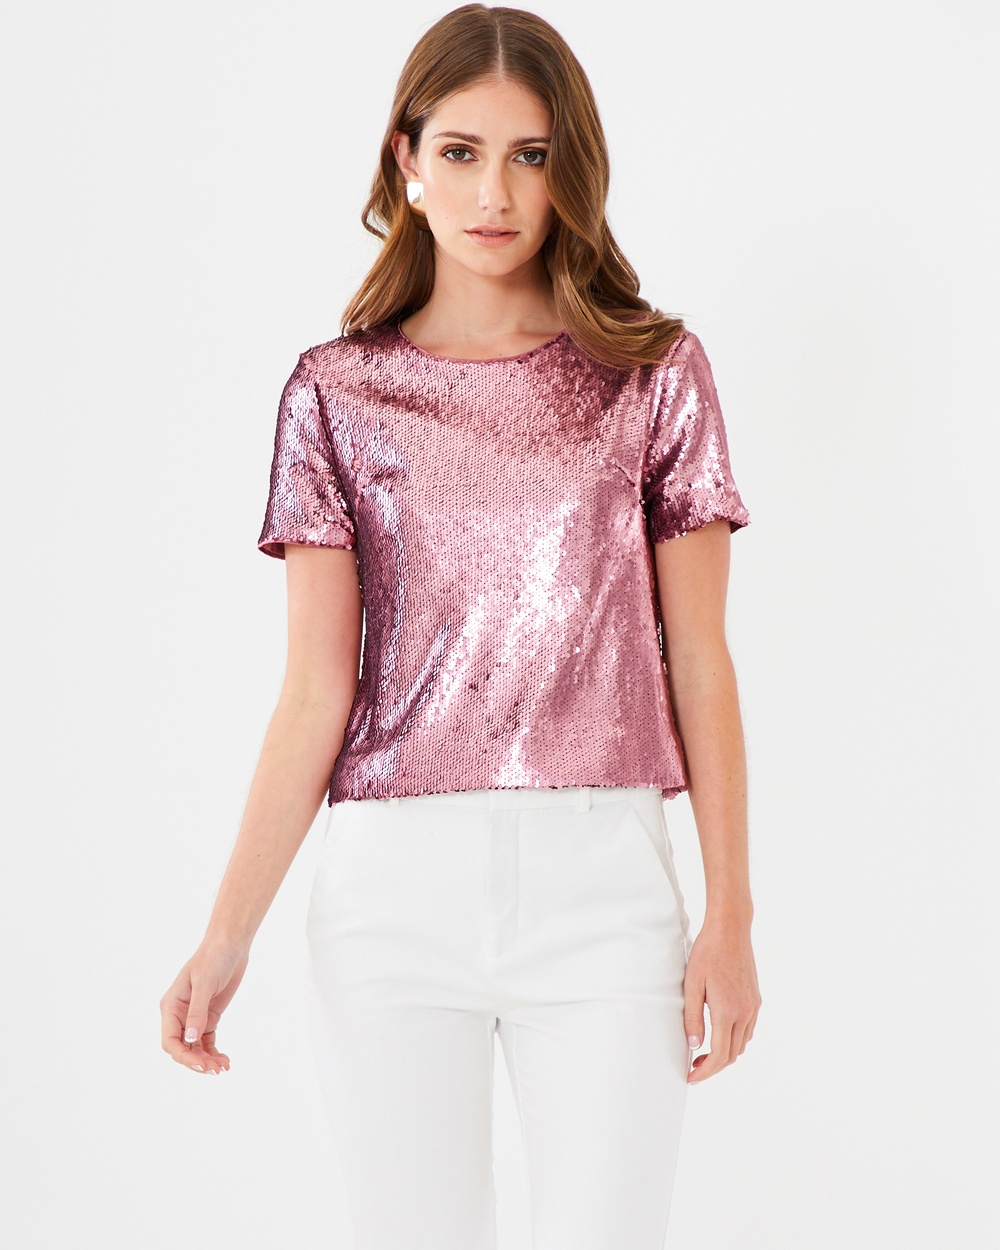 CHANCERY Lexi Sequin Top Cropped tops Pink Lexi Sequin Top